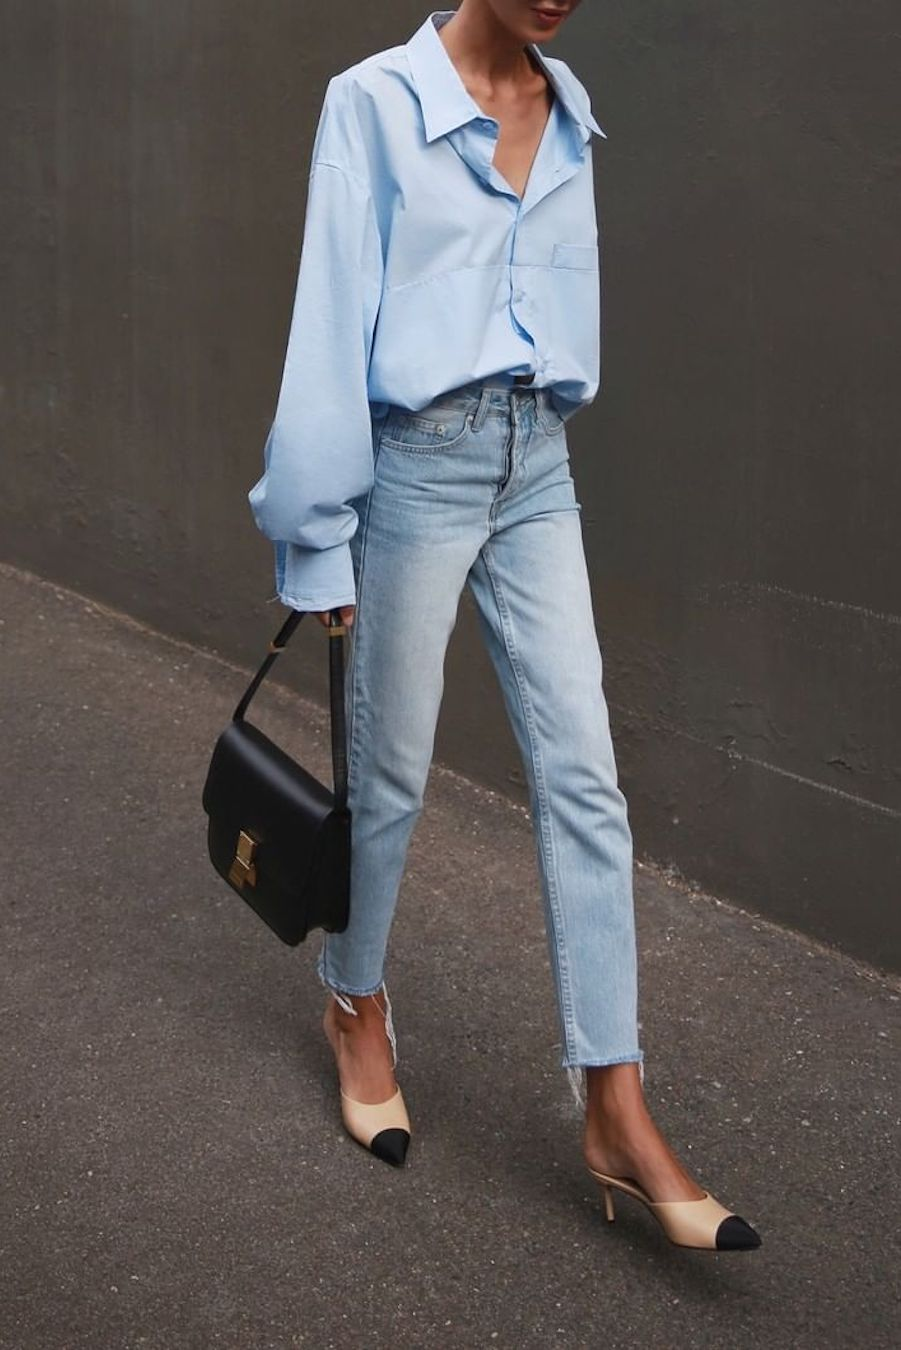 overszied blue button-down shirt-with blue jeans